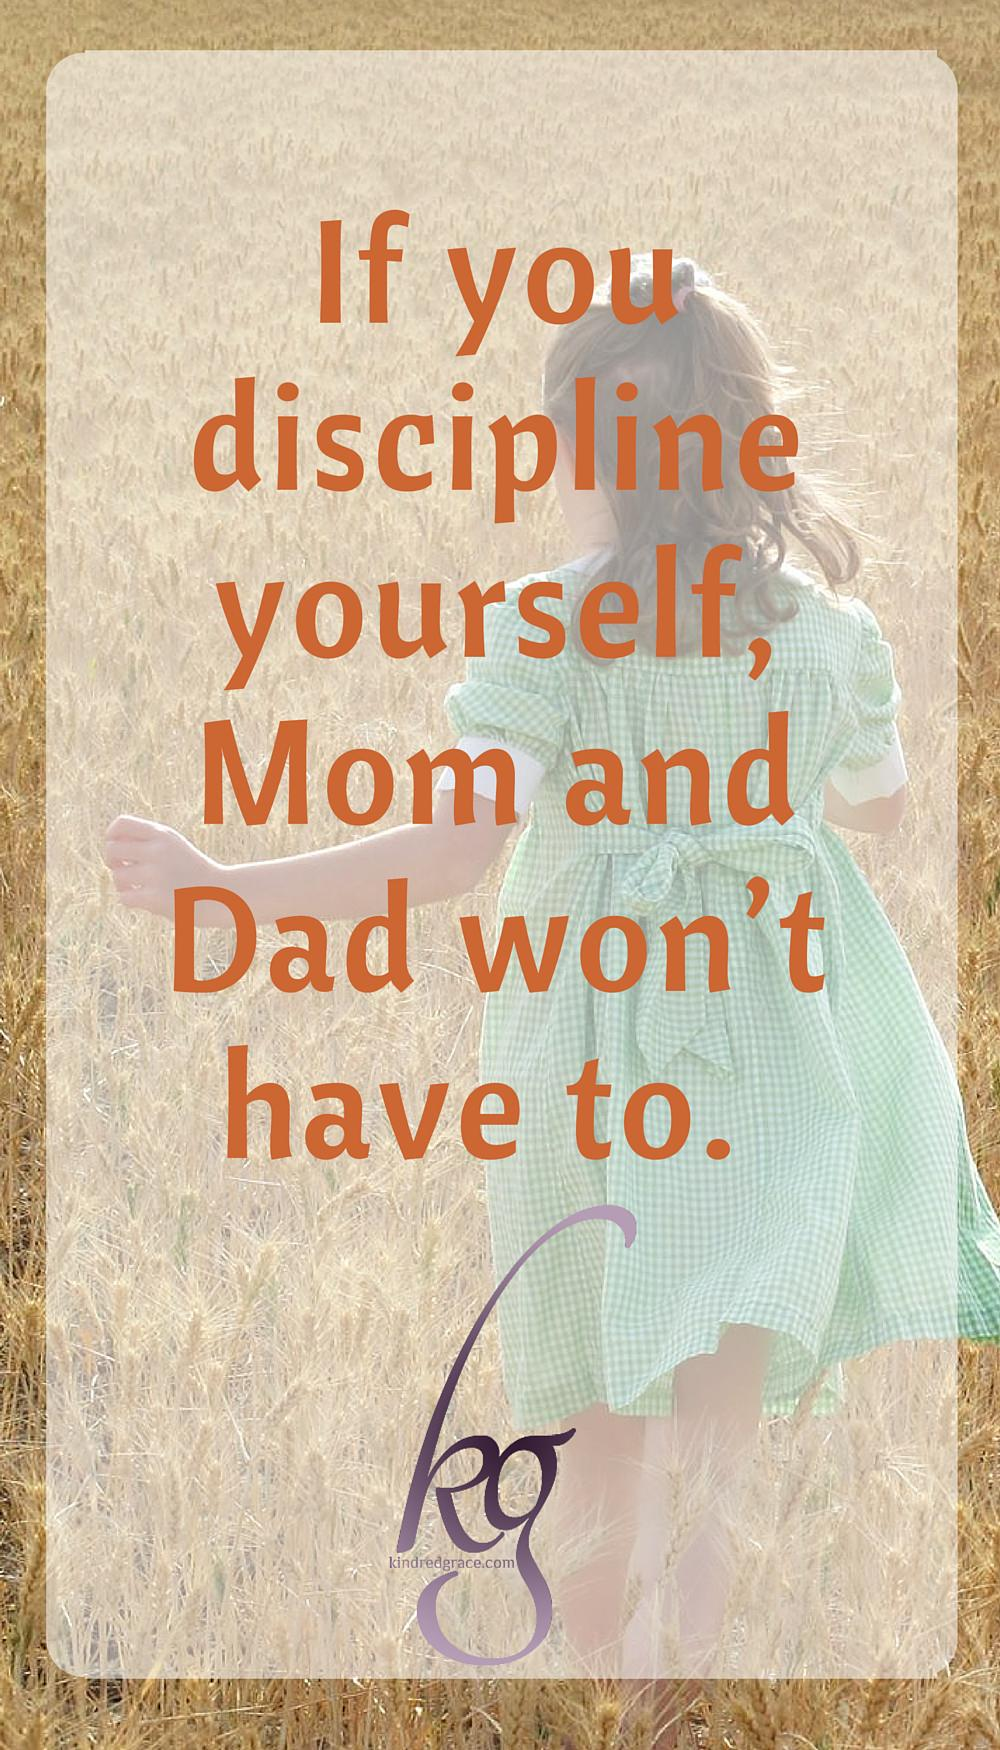 I don't ever like disciplining my children, but I know they require discipline in their lives or they will self-destruct, so my sights are set on the day when my children can take over their own discipline. via @KindredGrace